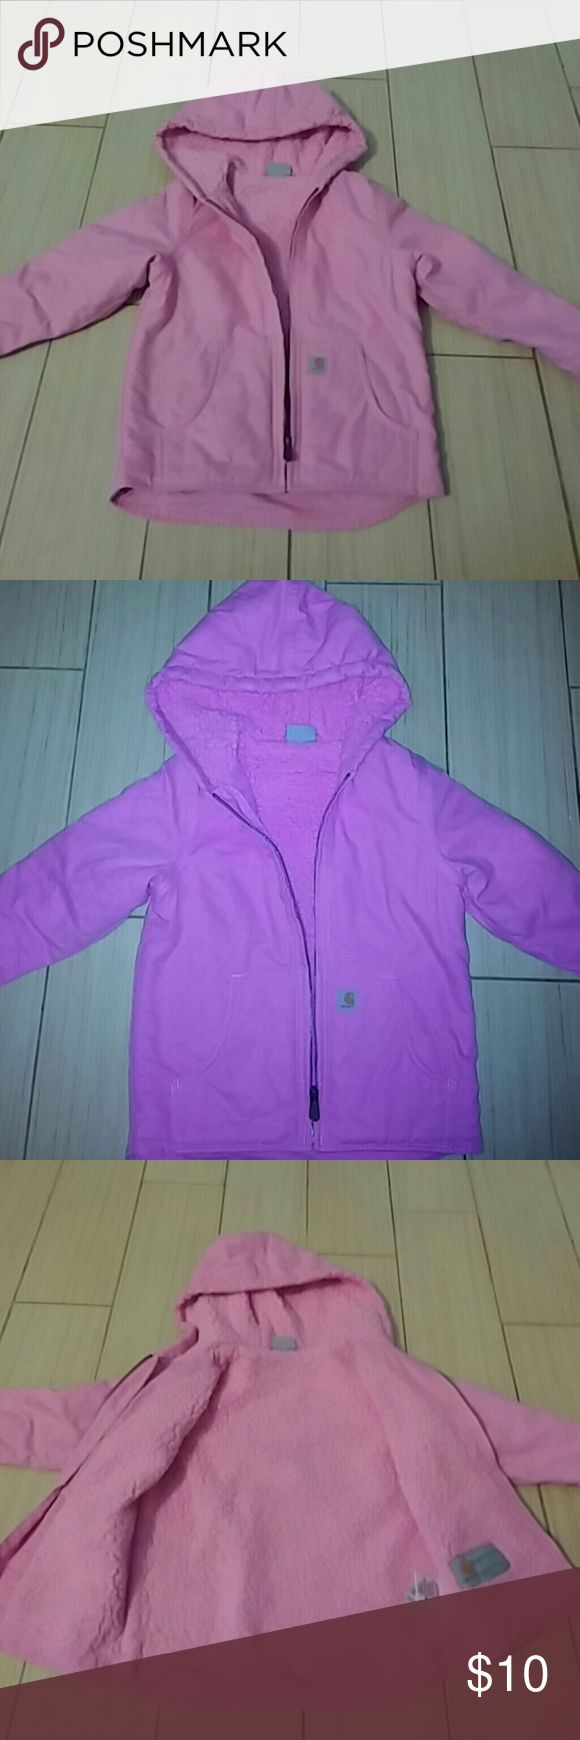 Pink jacket pink jacket Girls toddler's whole heart jacket in good condition Carhartt Jackets & Coats